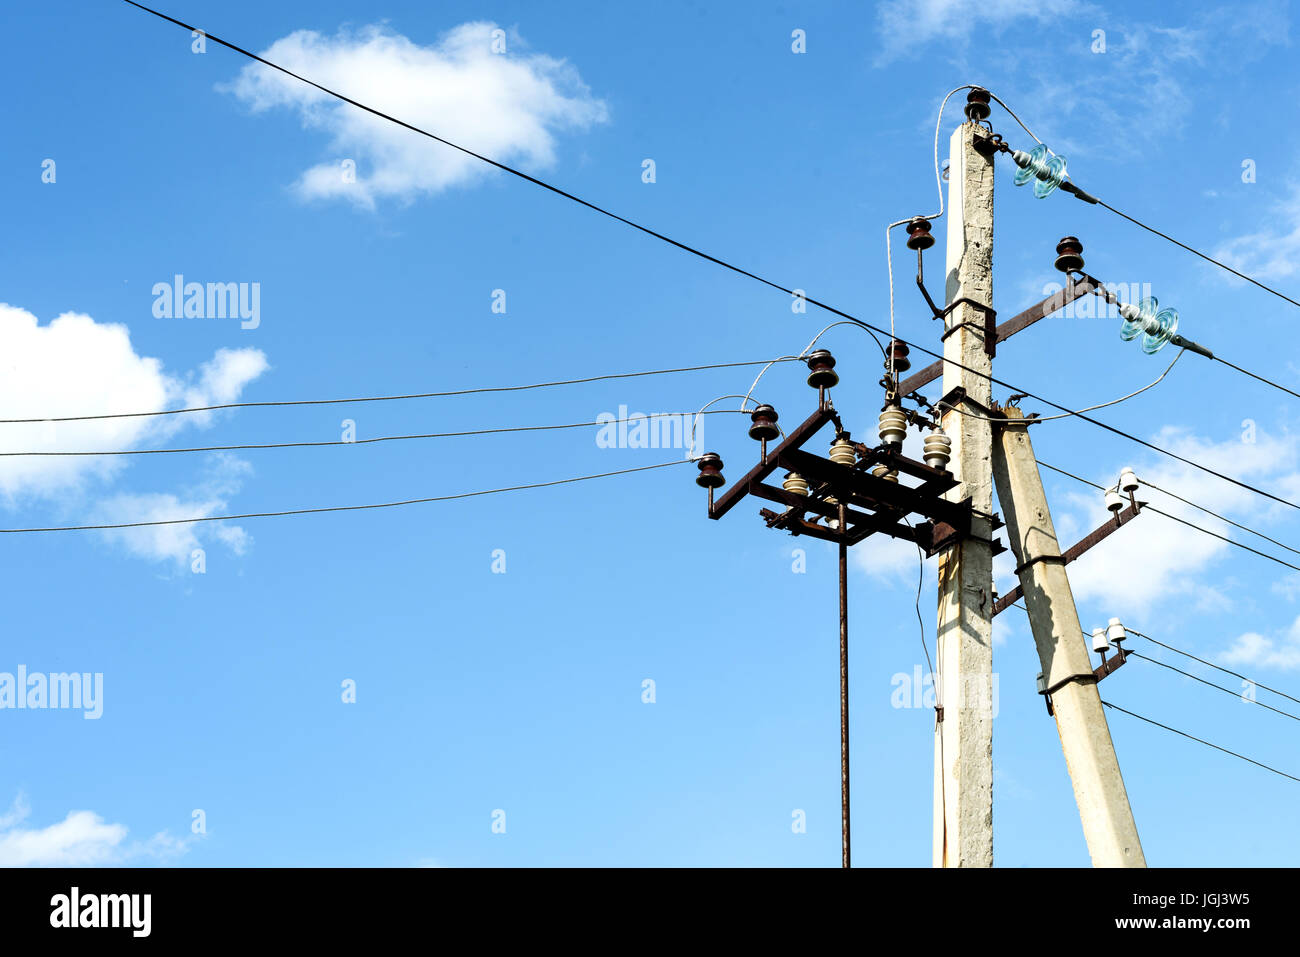 hight resolution of aged electricity pylon with cables and insulators shot against a blue summer sky with white clouds